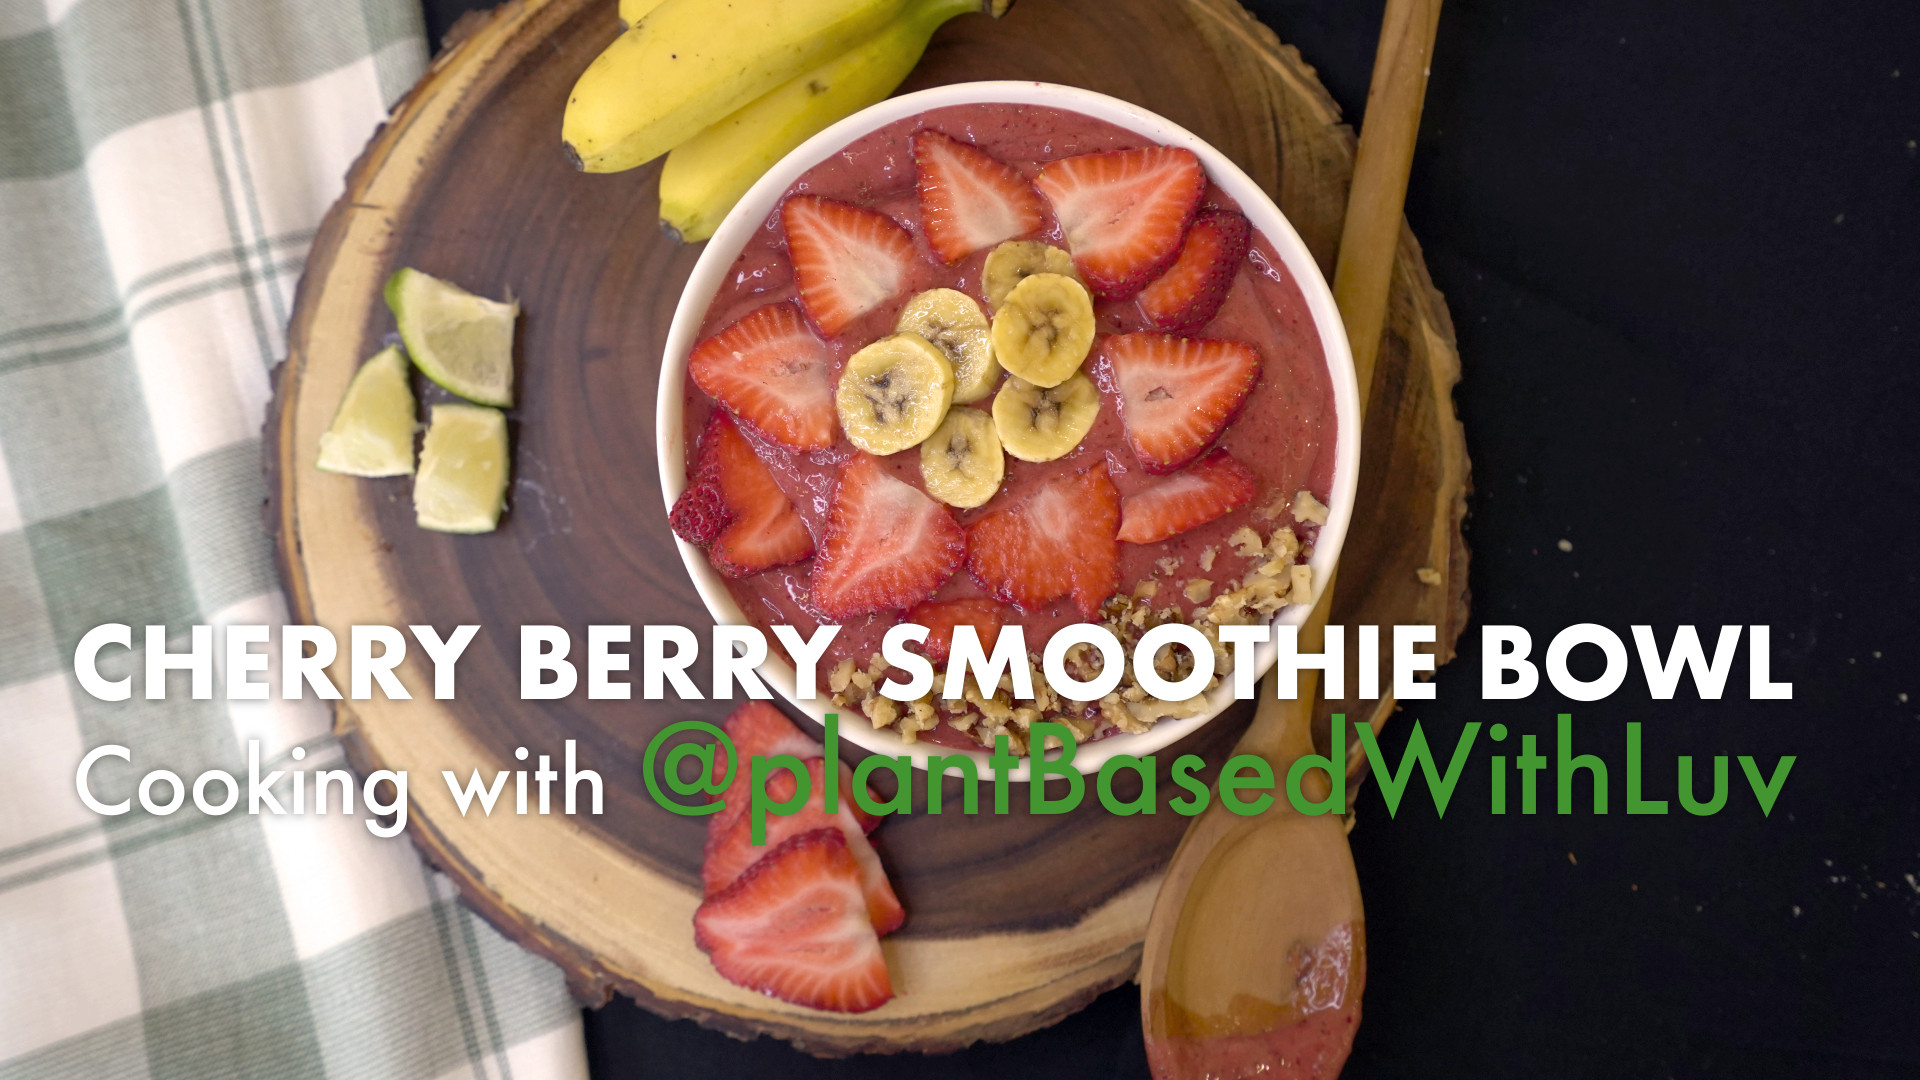 CHERRY BERRY SMOOTHIE BOWL: PLANT-BASED WITH LUV